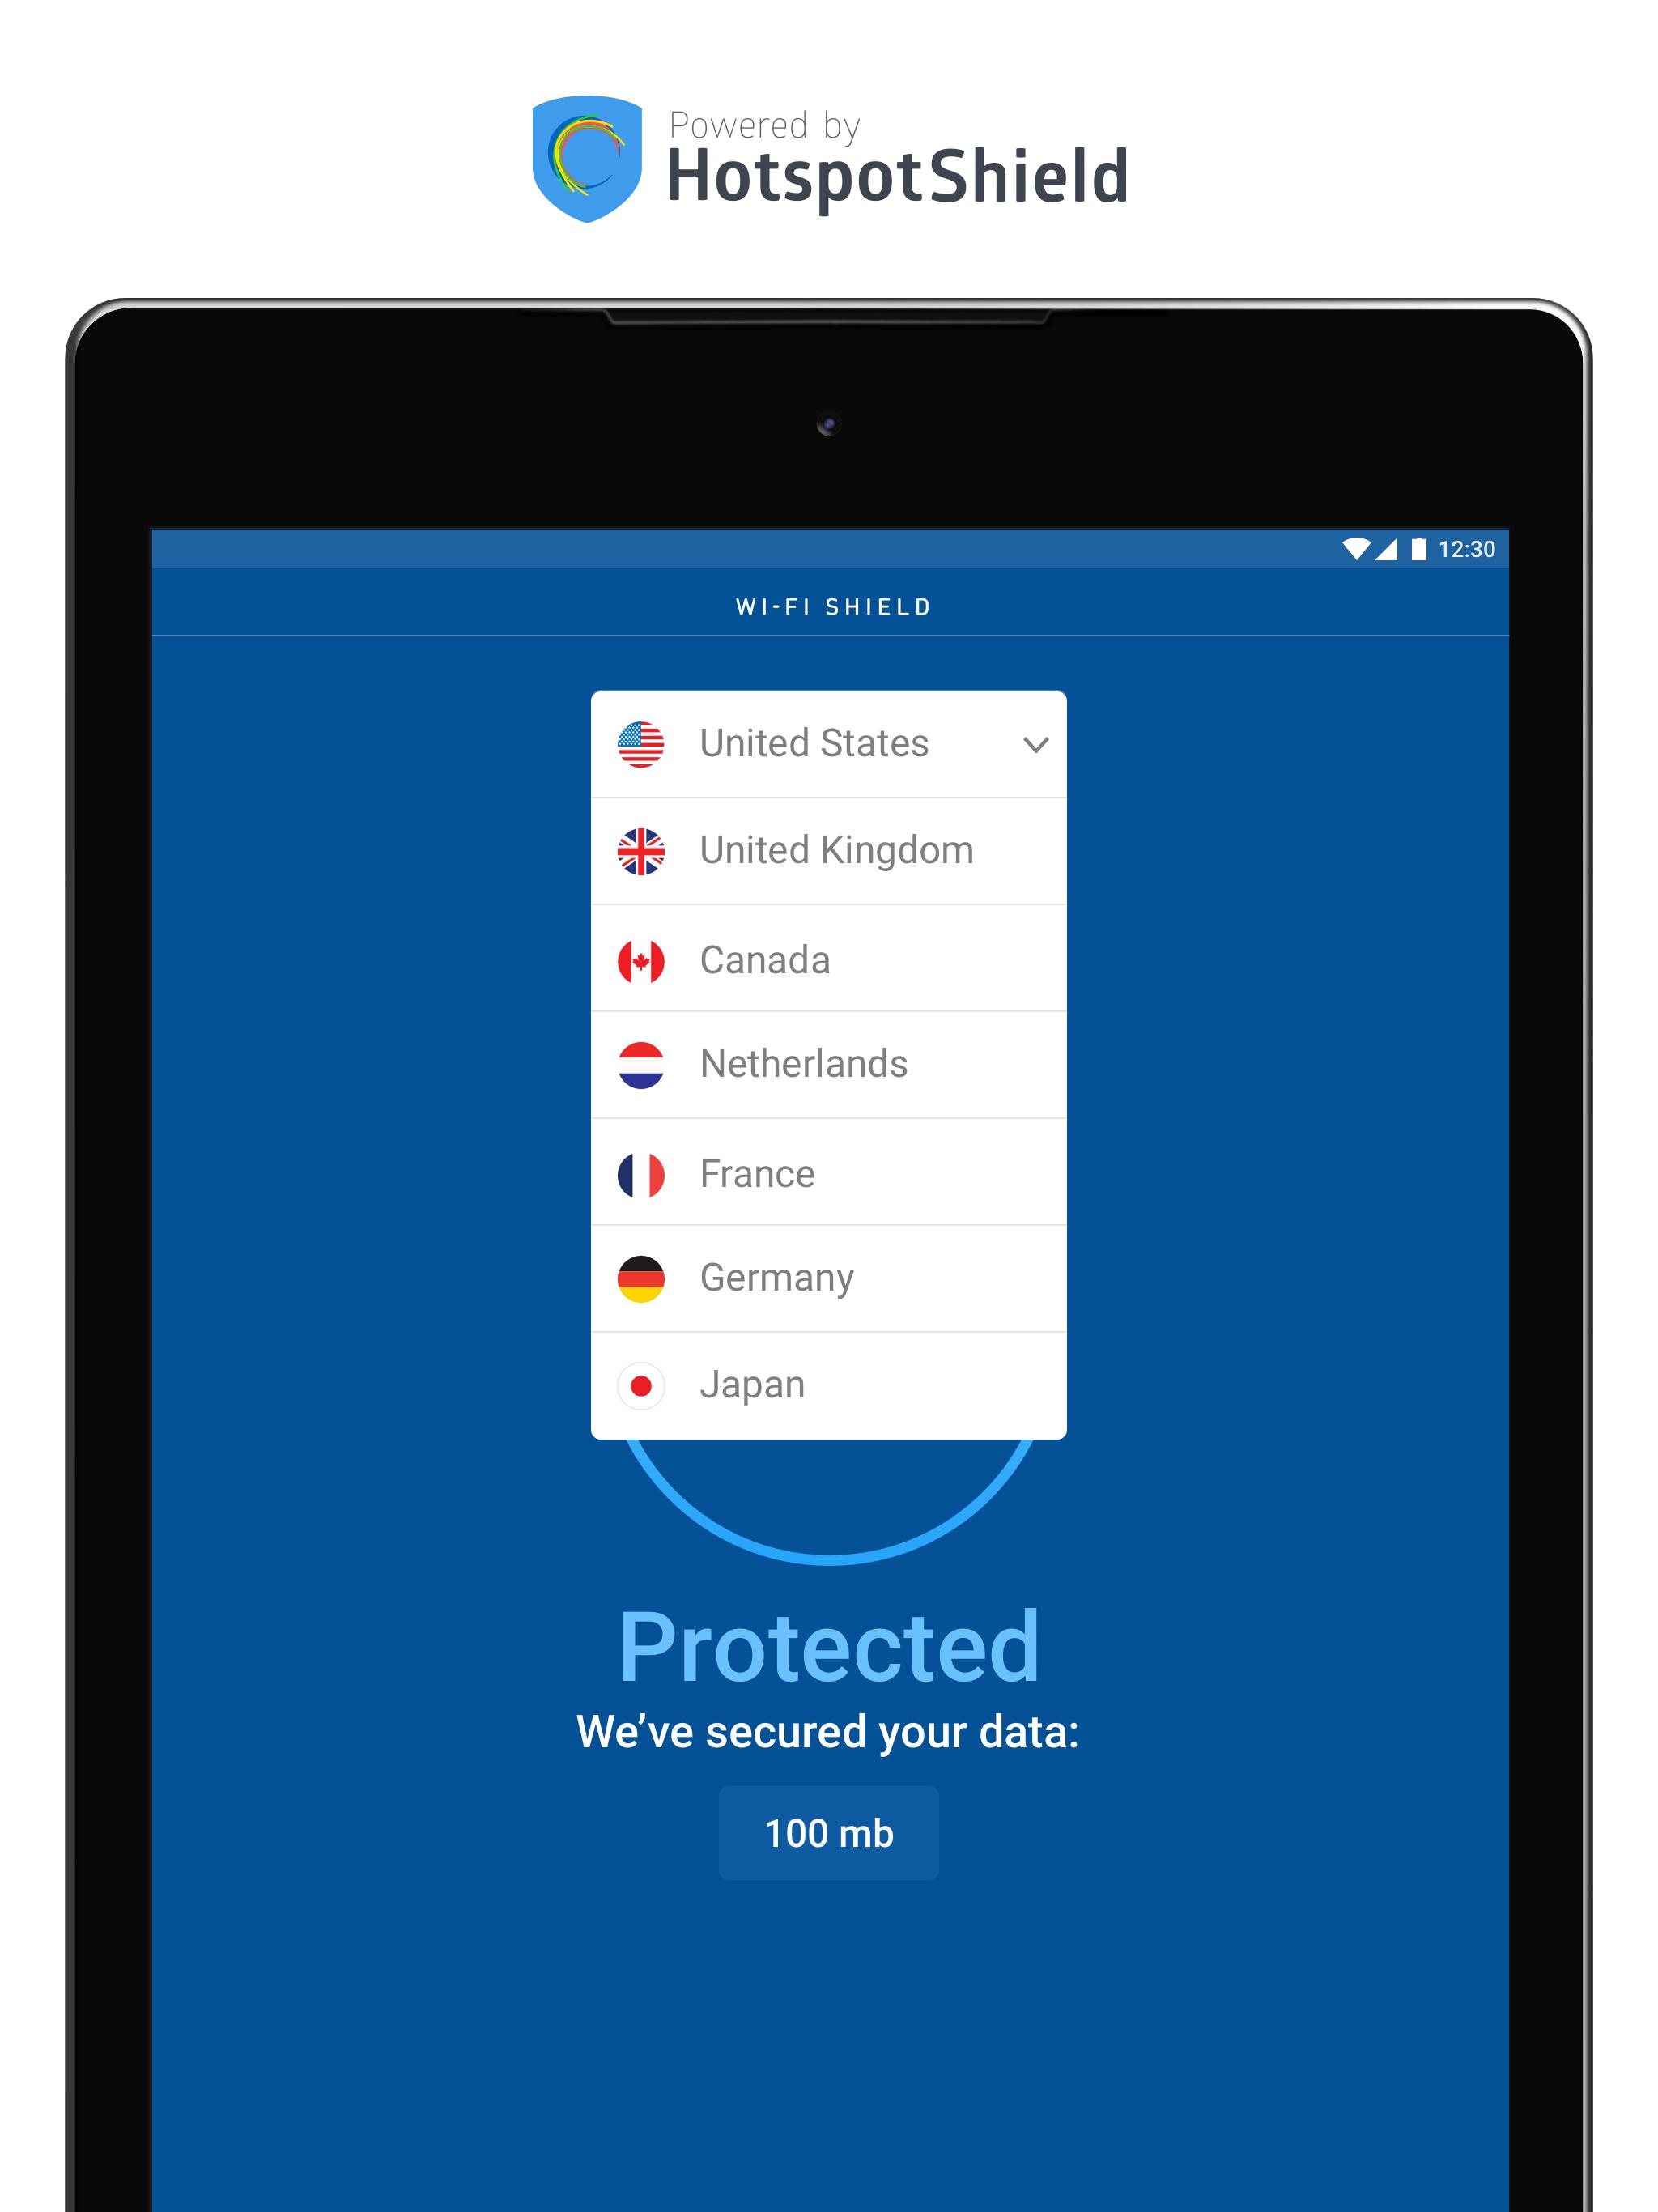 WI-FI SHIELD for Android - APK Download